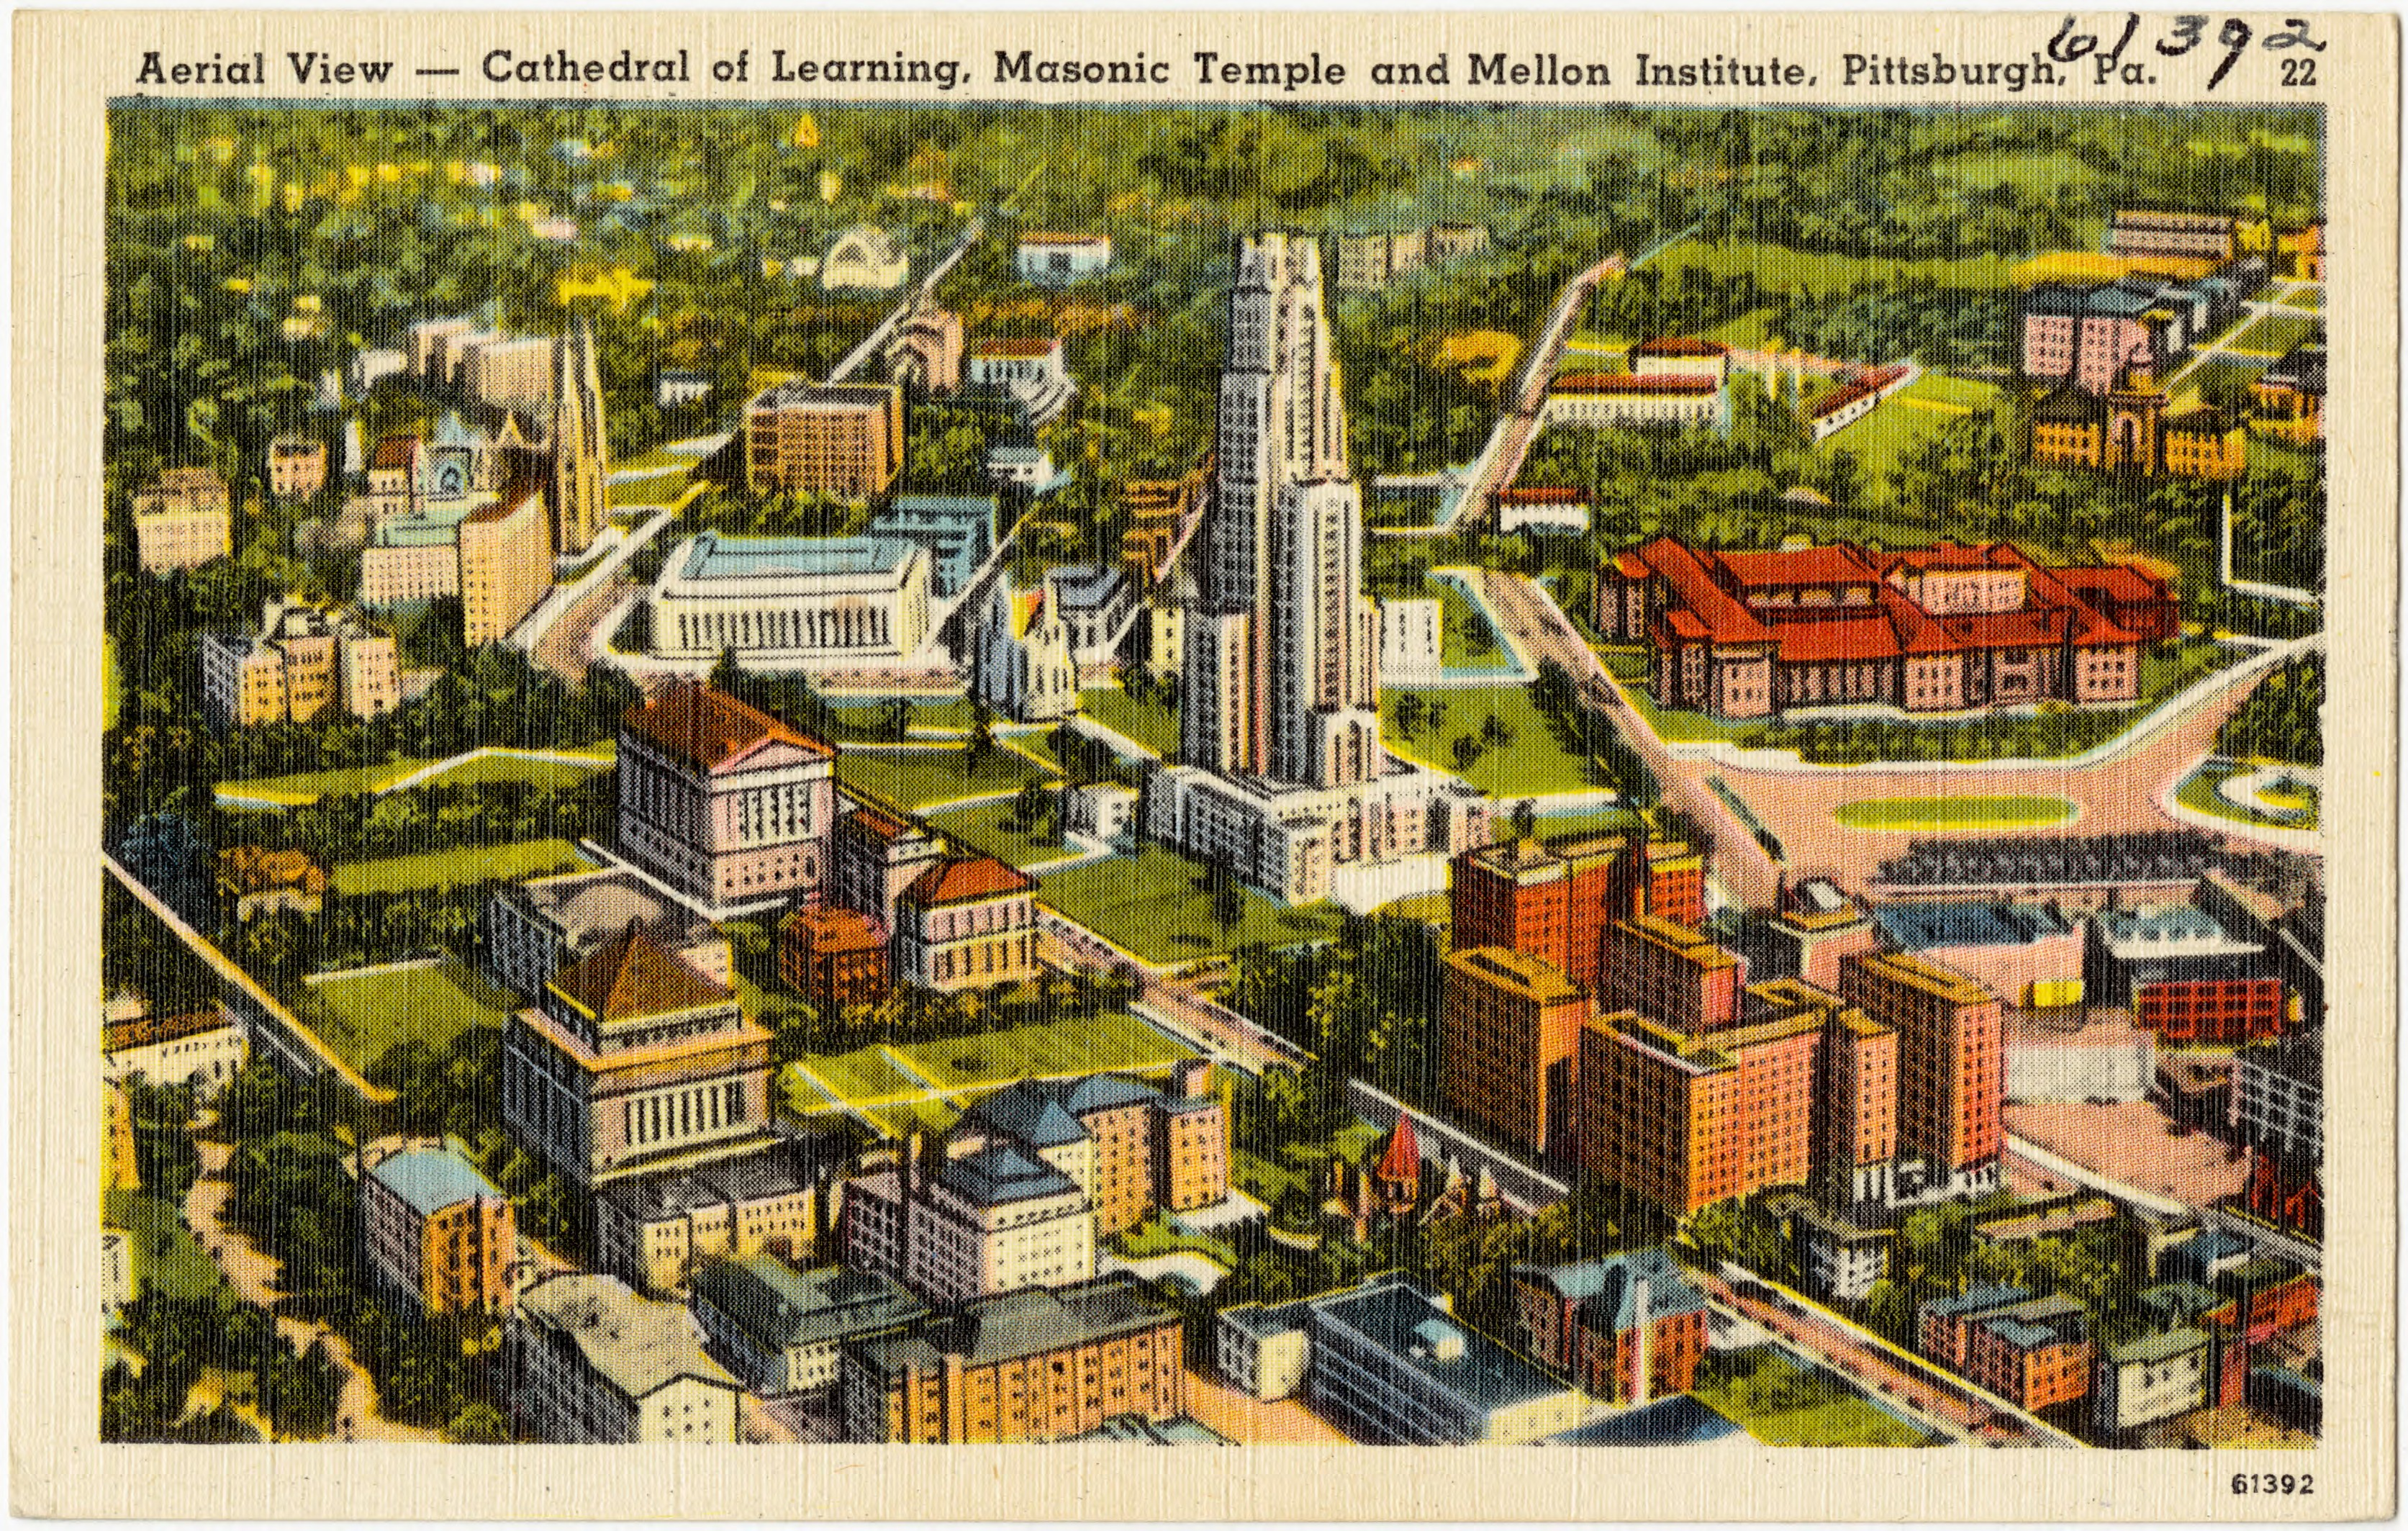 Fileaerial View Cathedral Of Learning Masonic Temple And Mellon